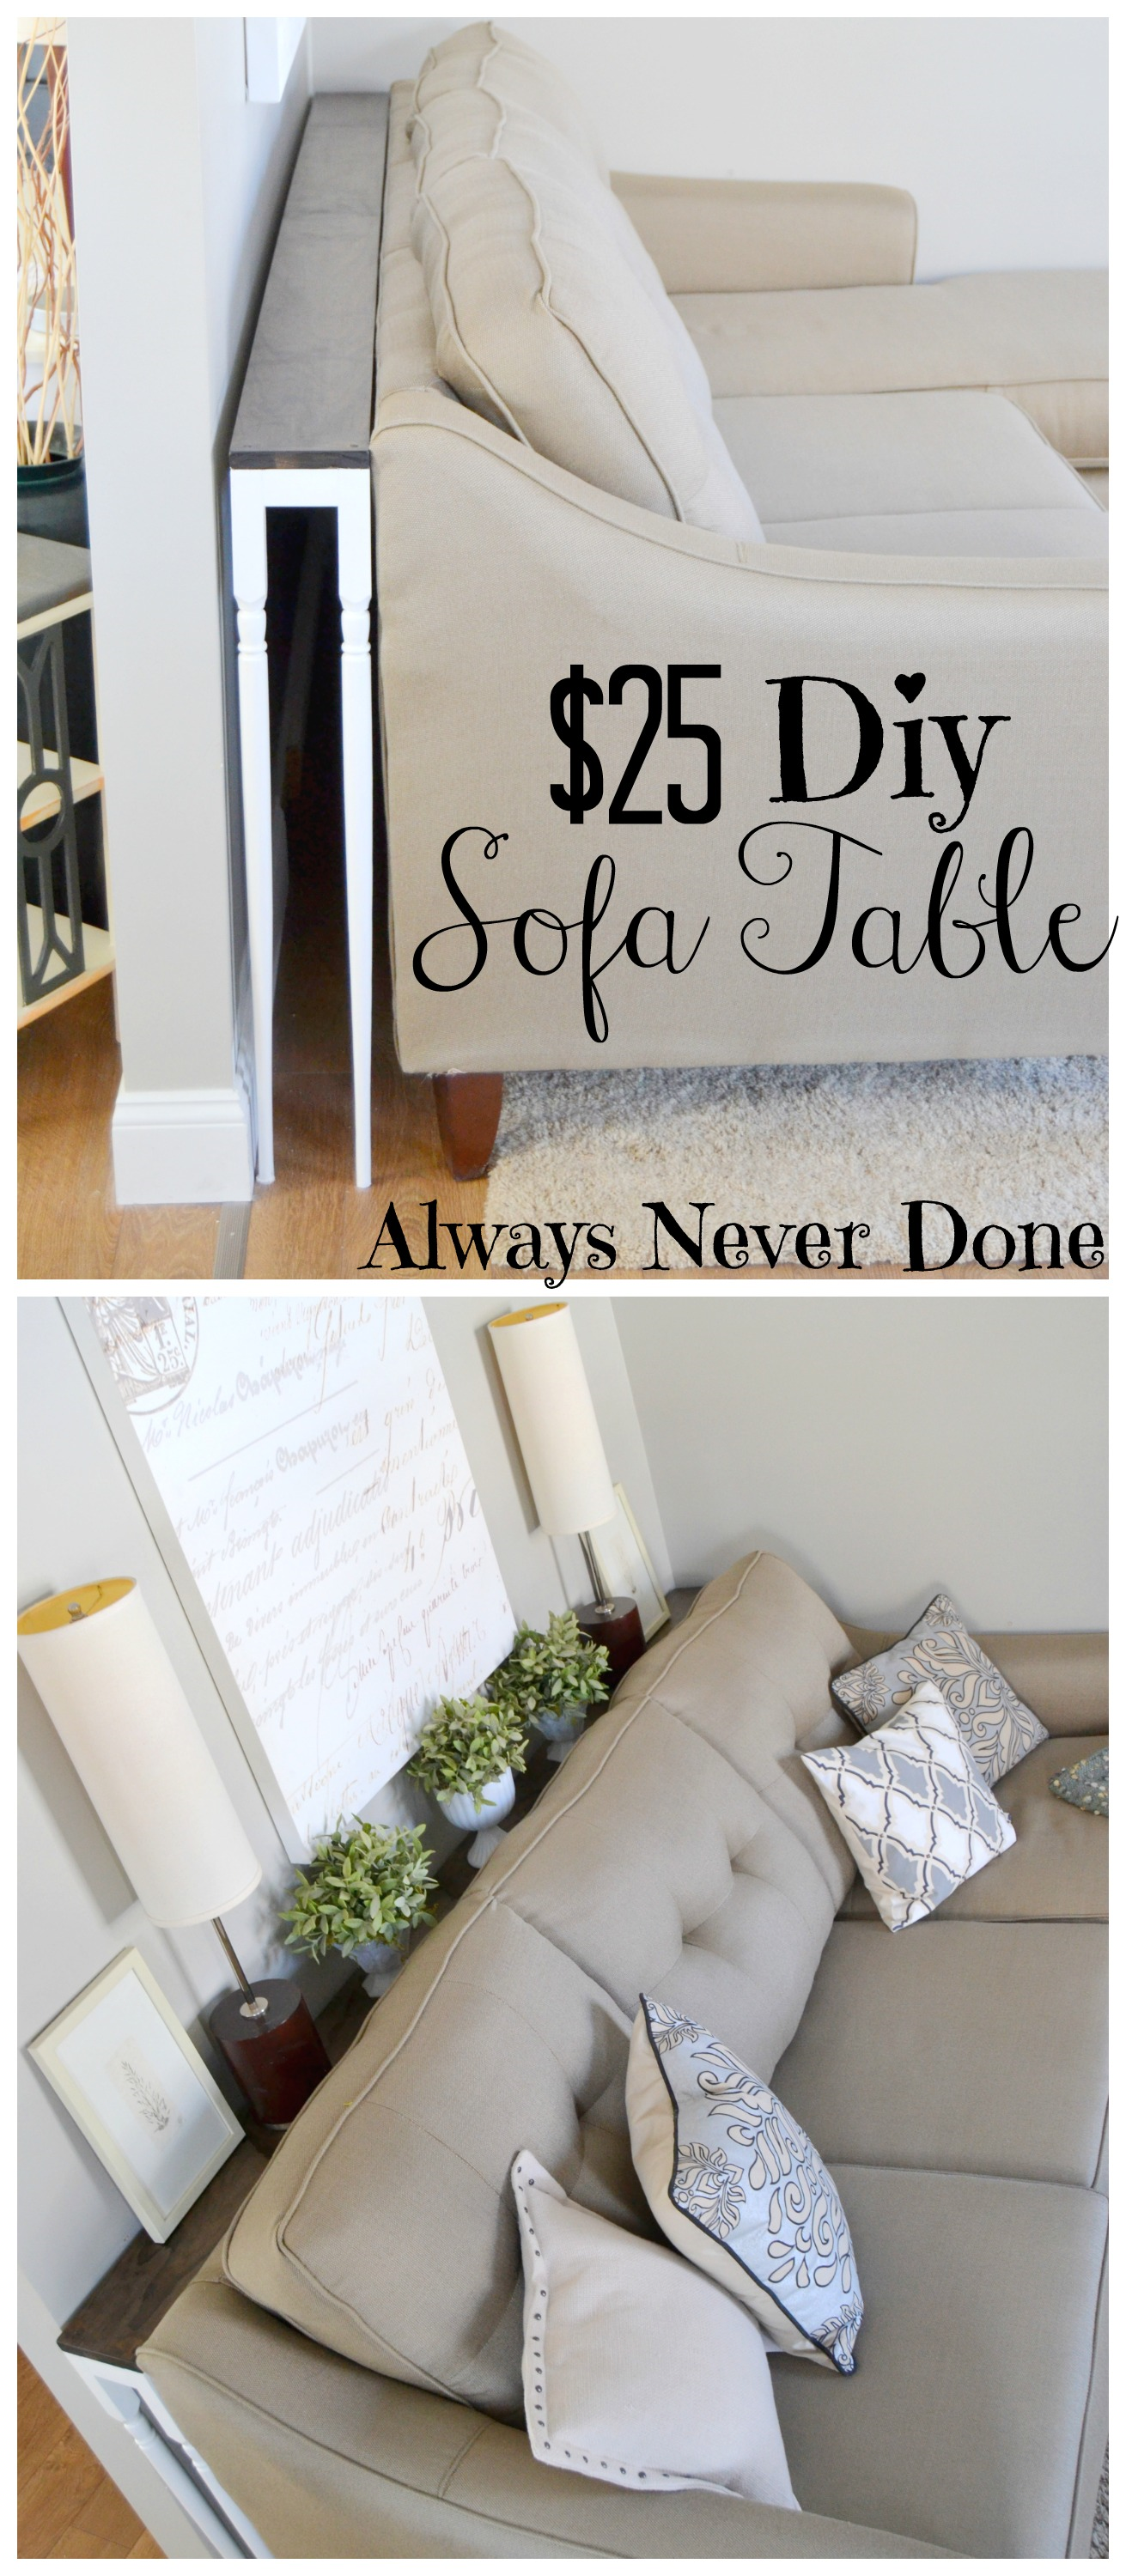 Big Couch Small Door Diy Sofa Table For 25 Using Stair Rails As Legs